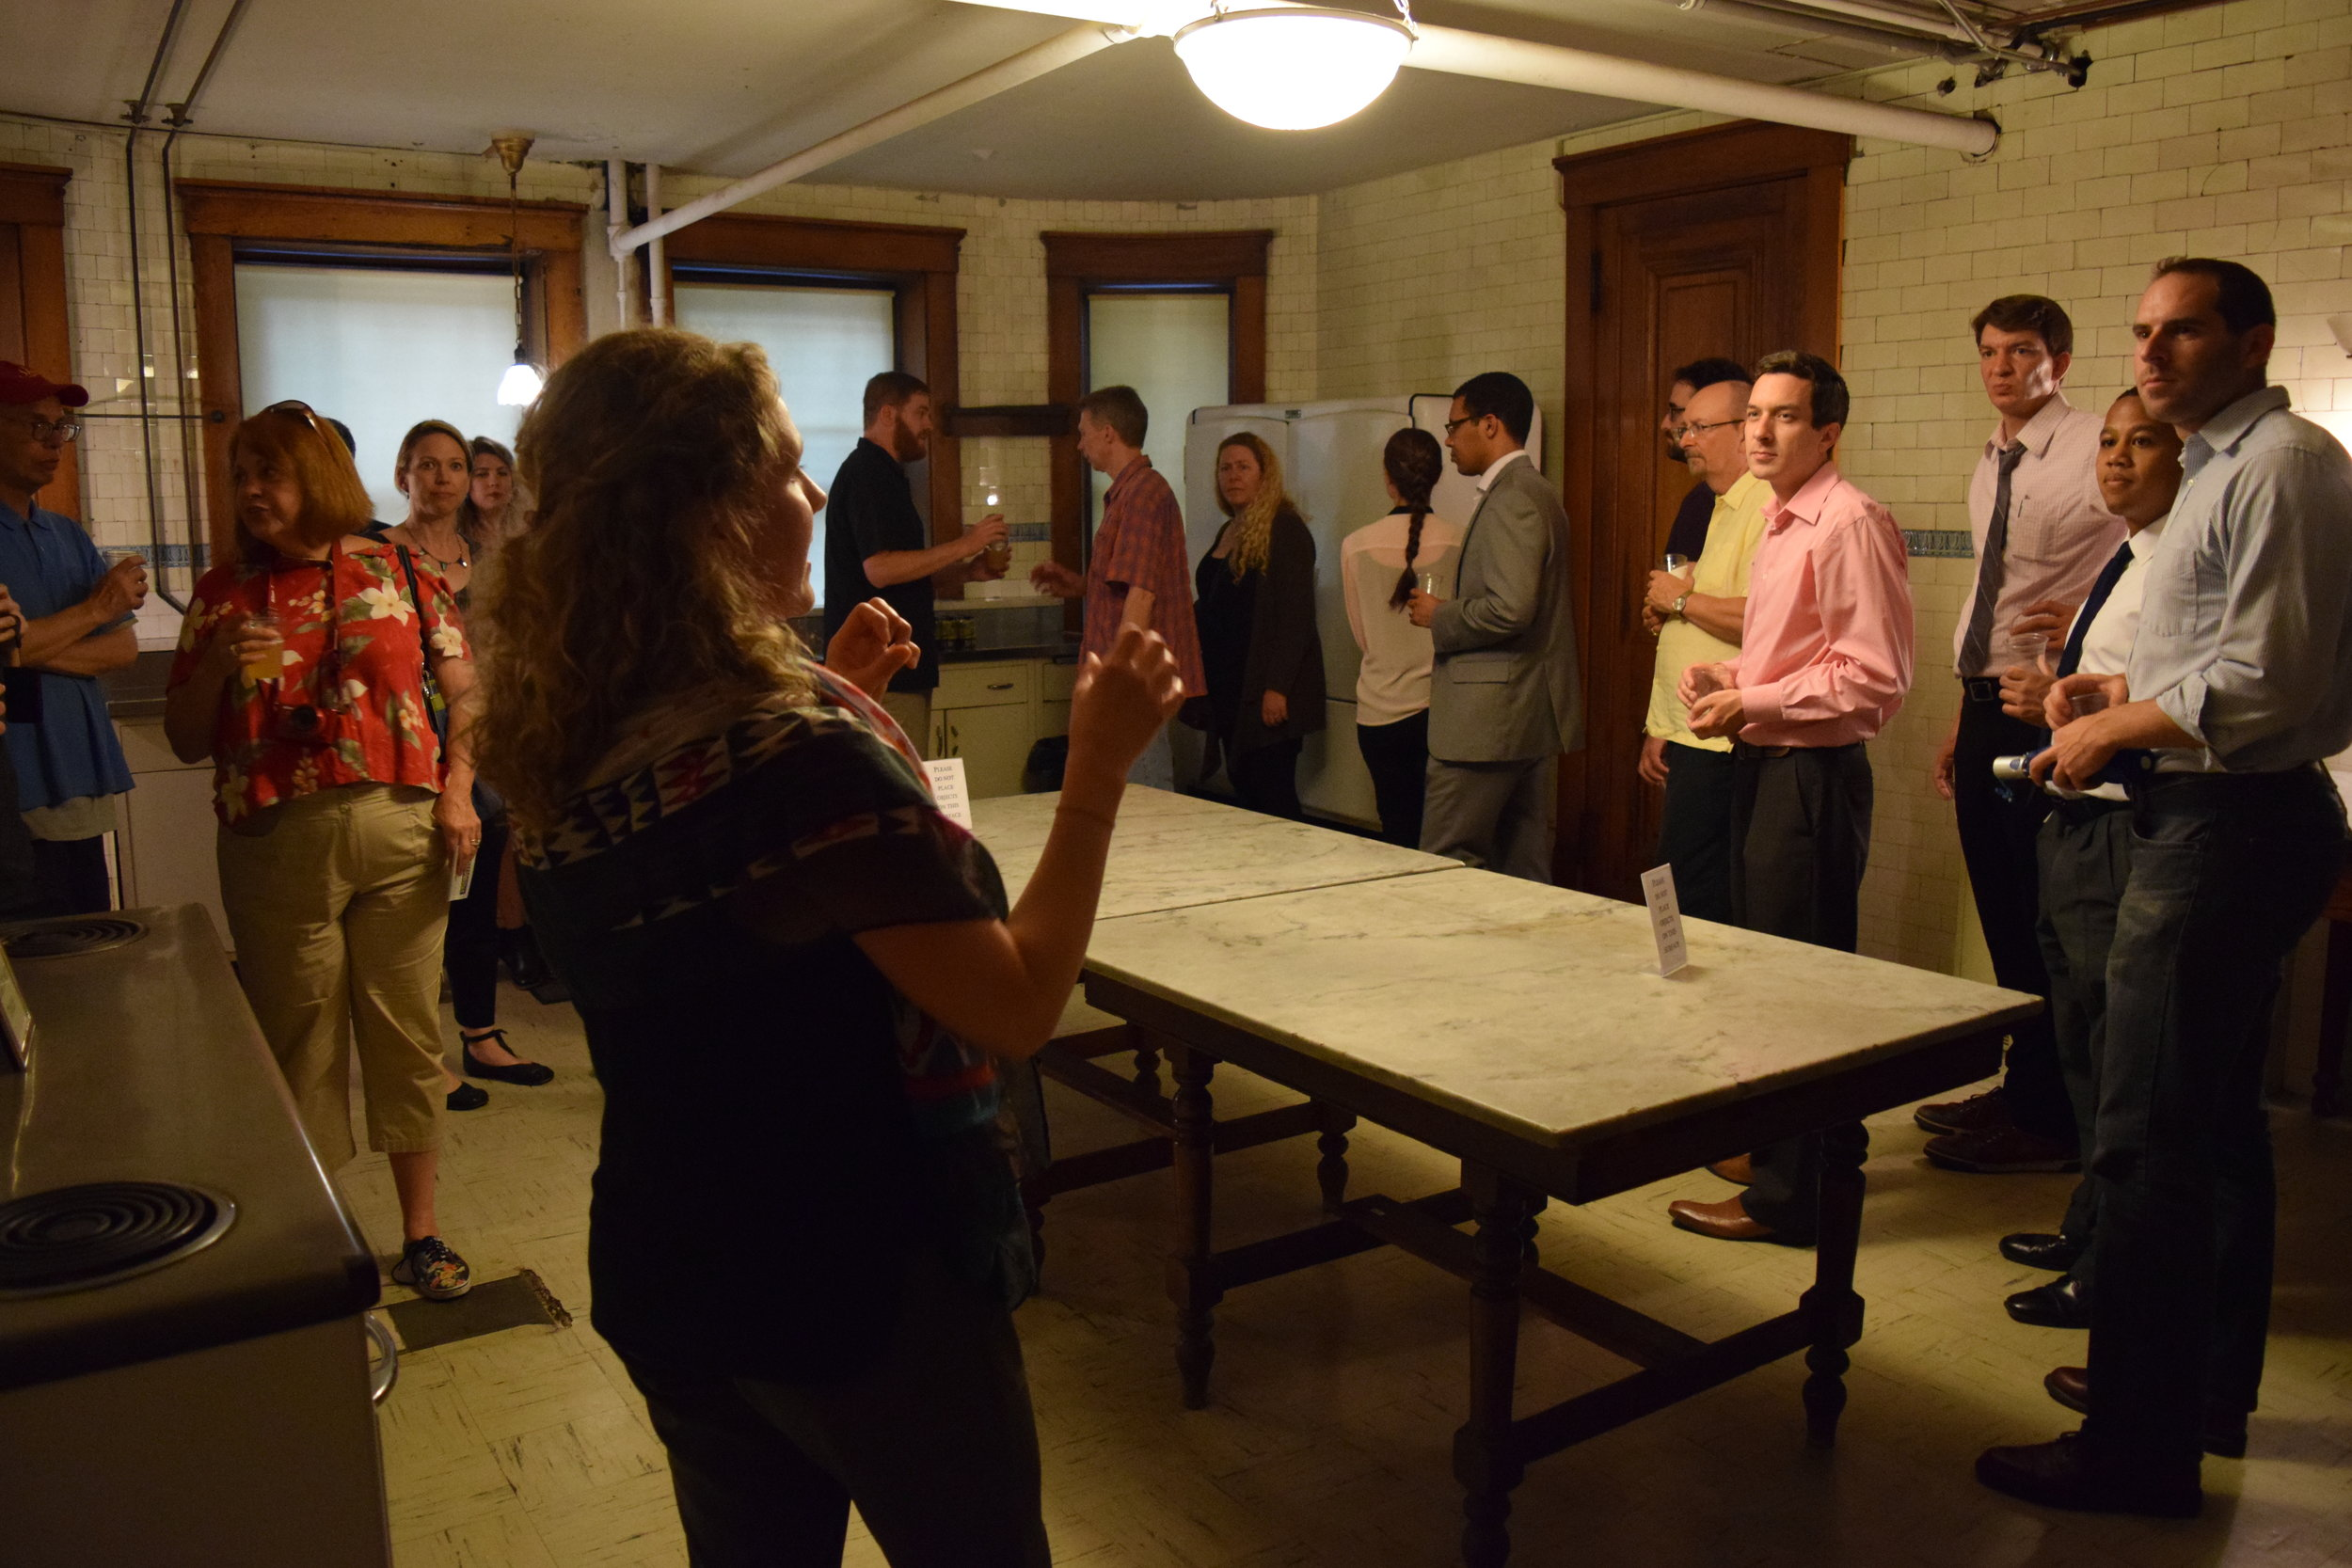 Volunteer - Do you have a passion for story-telling and enjoy working with people? Volunteers are essential to the Heurich House Museum's daily operations. Serve as a tour guide, assist with public programs, or help in our garden. Our volunteers enjoy professional development opportunities, discounts on special events, behind-the-scenes tours, and reciprocal museum entrance.